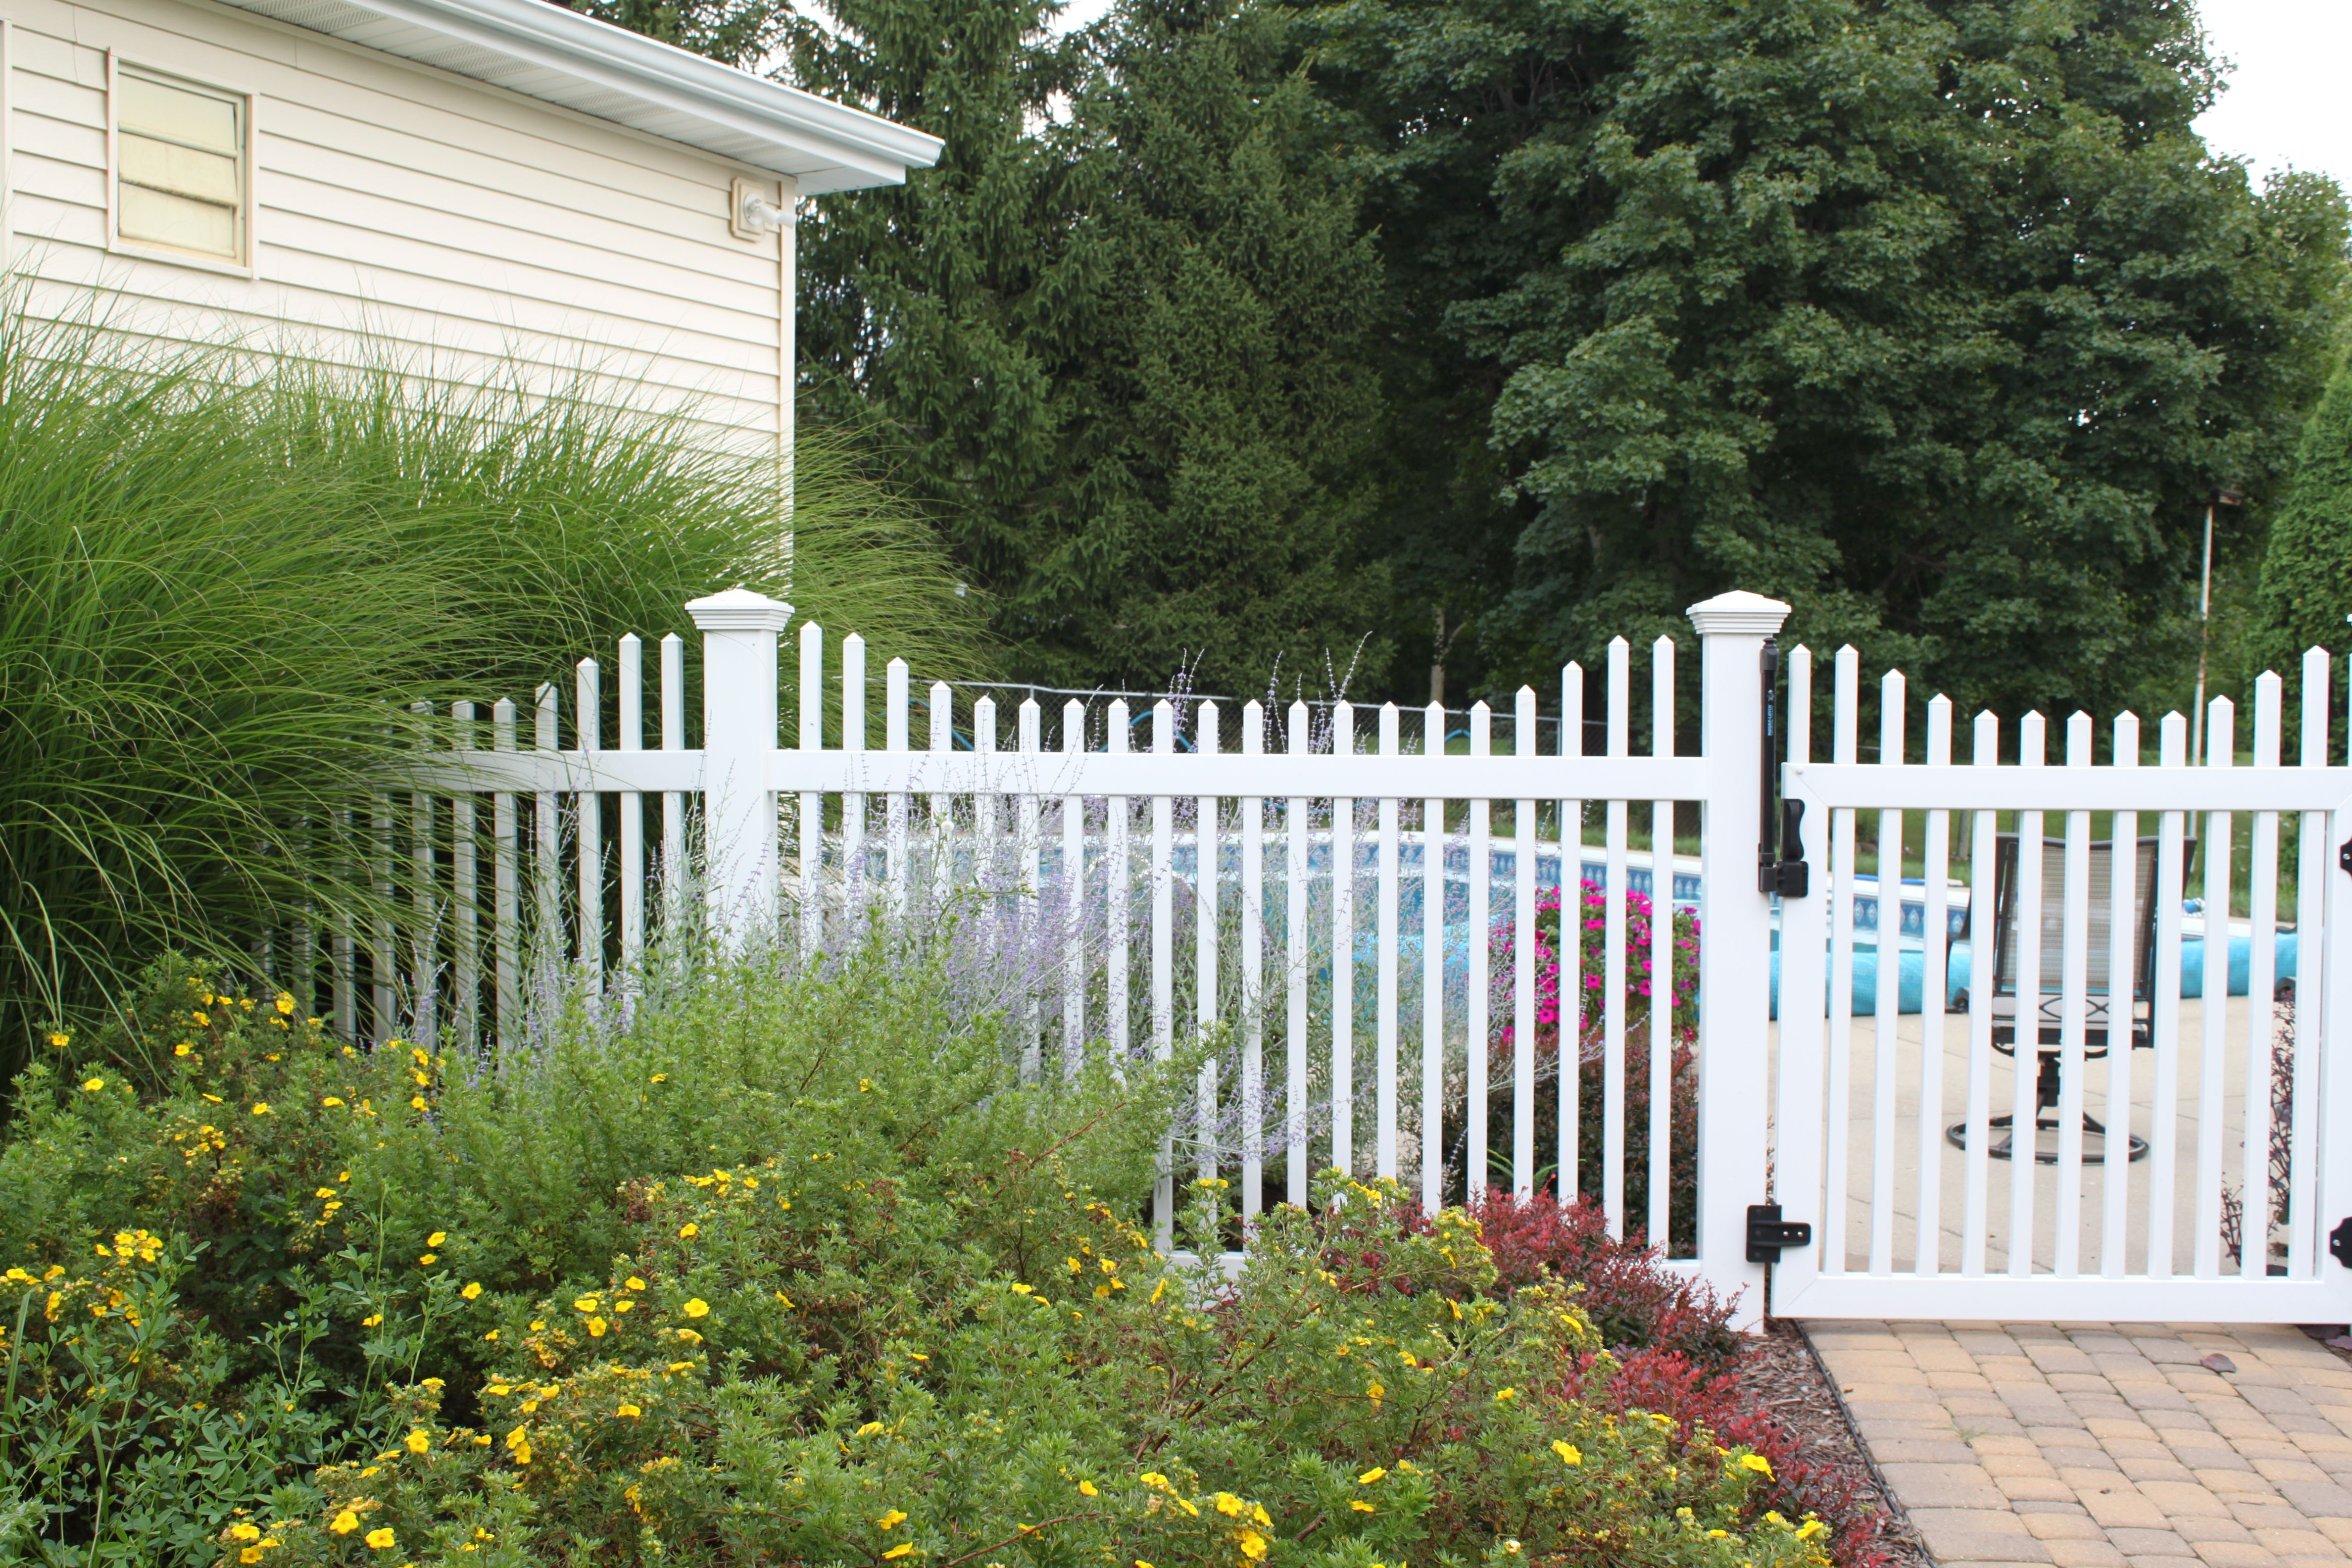 Ontario Picket Fence Scalloped Style, Good Neighbor Vinyl Picket Fence